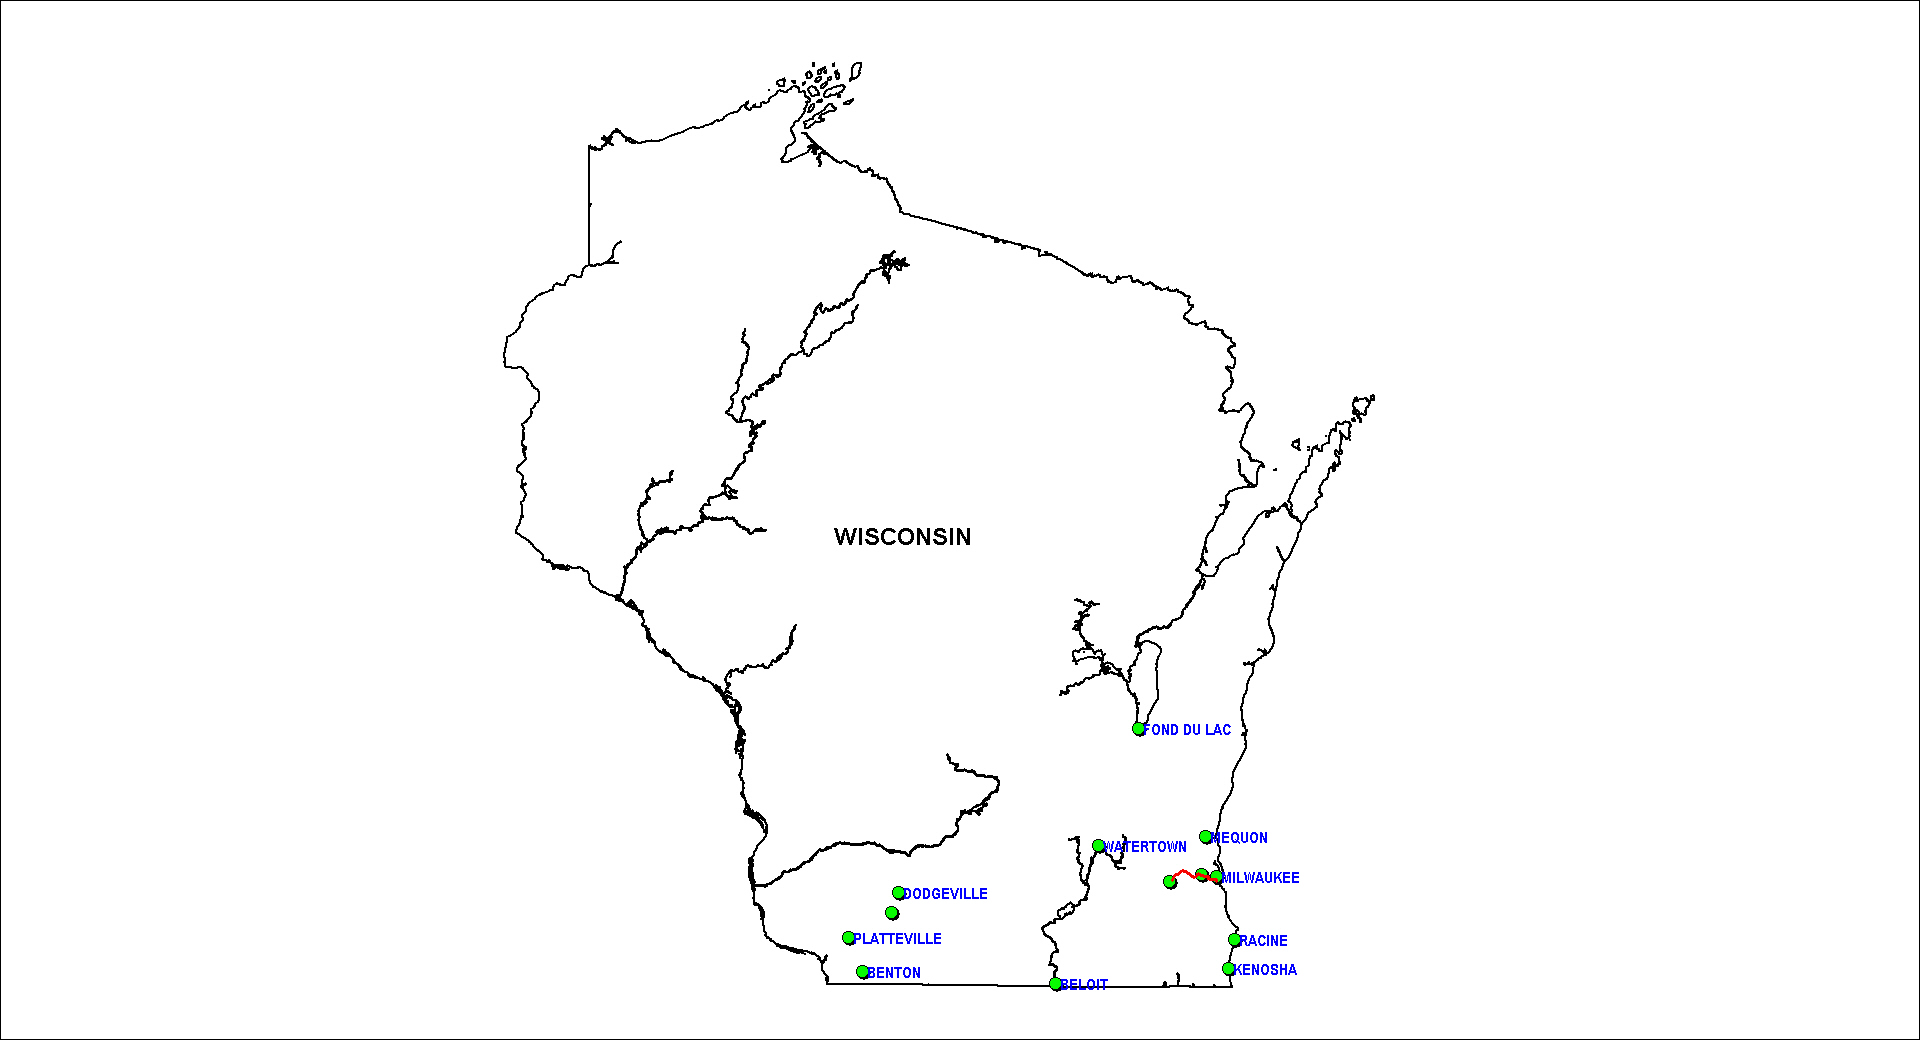 Wisconsin Railroad Map as of 1850